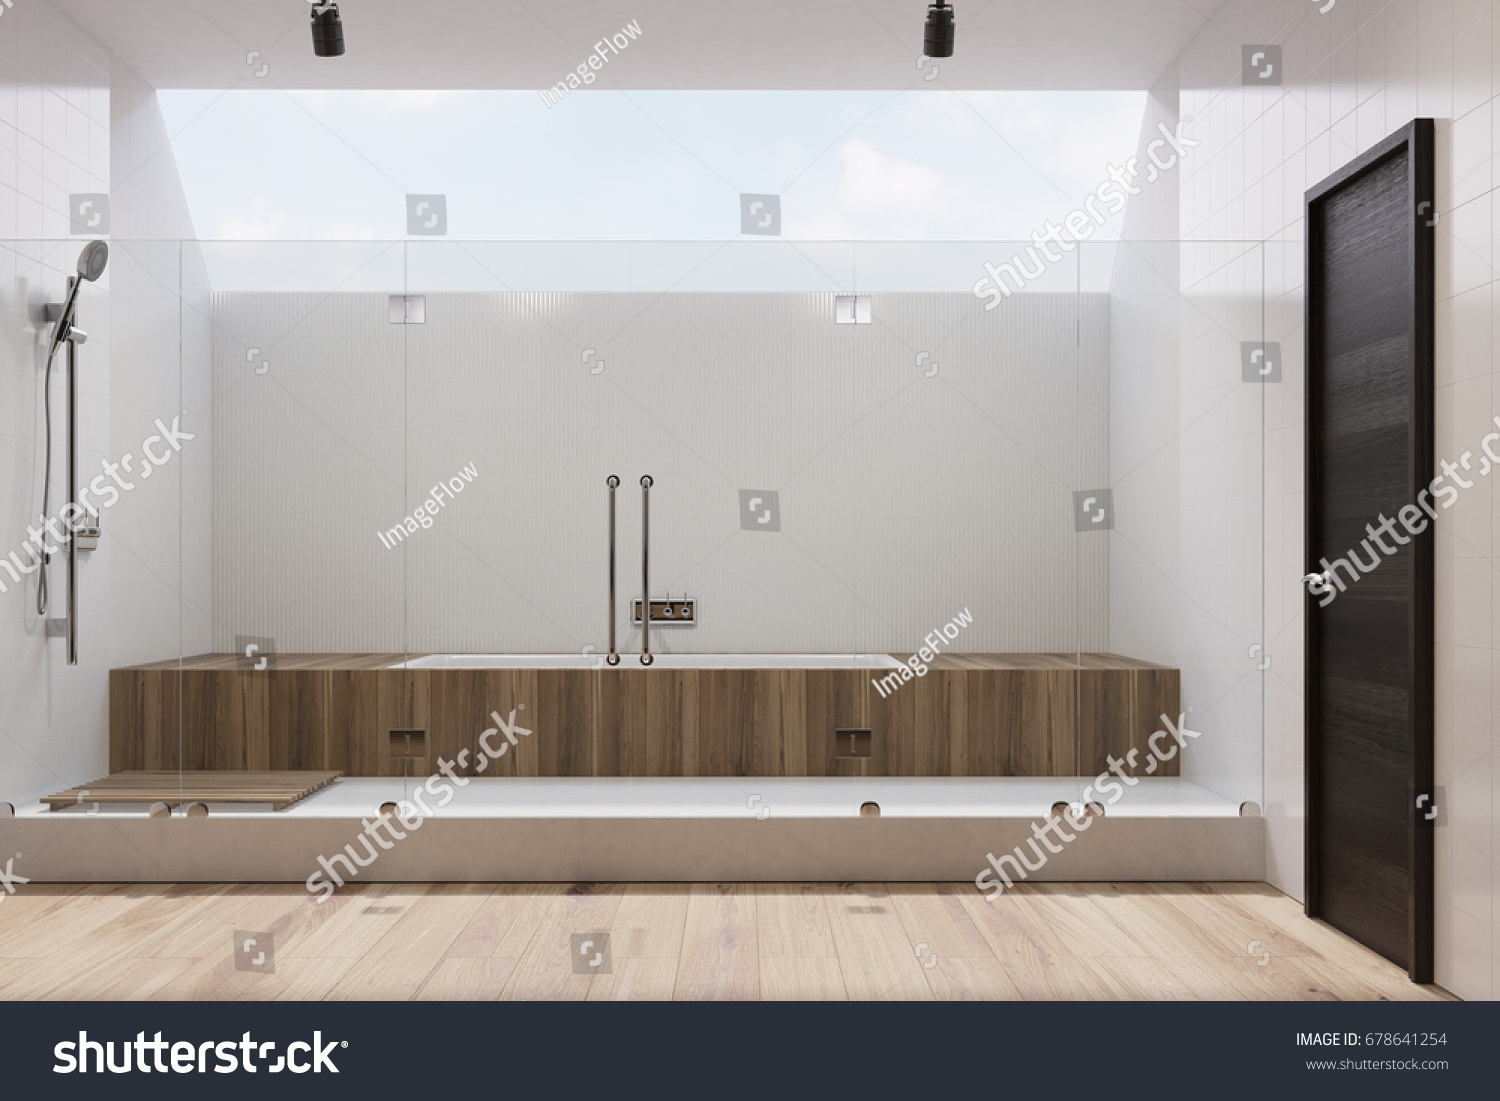 White Tiled Bathroom Interior Wooden Cabinets Stock Illustration ...